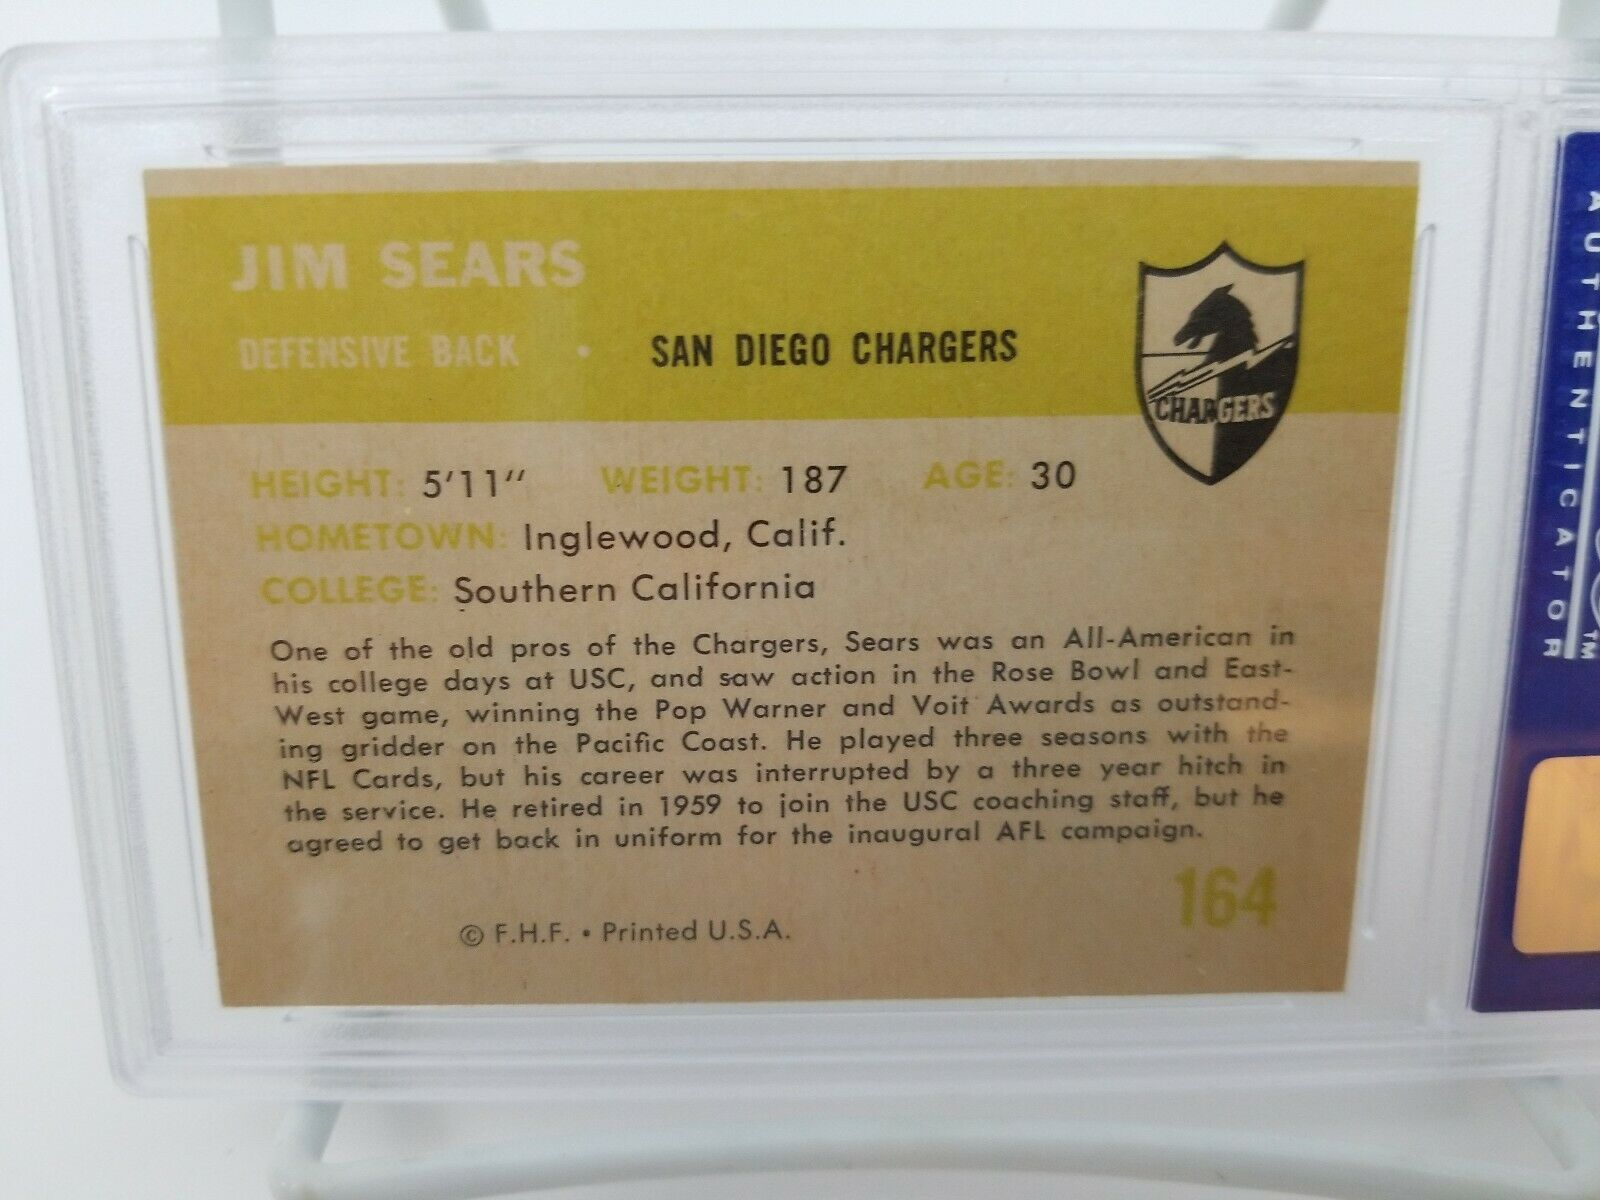 1961 Fleer Football Jim Sears #164 PSA 8 NM-MT 8 San Diego Chargers Card image 6